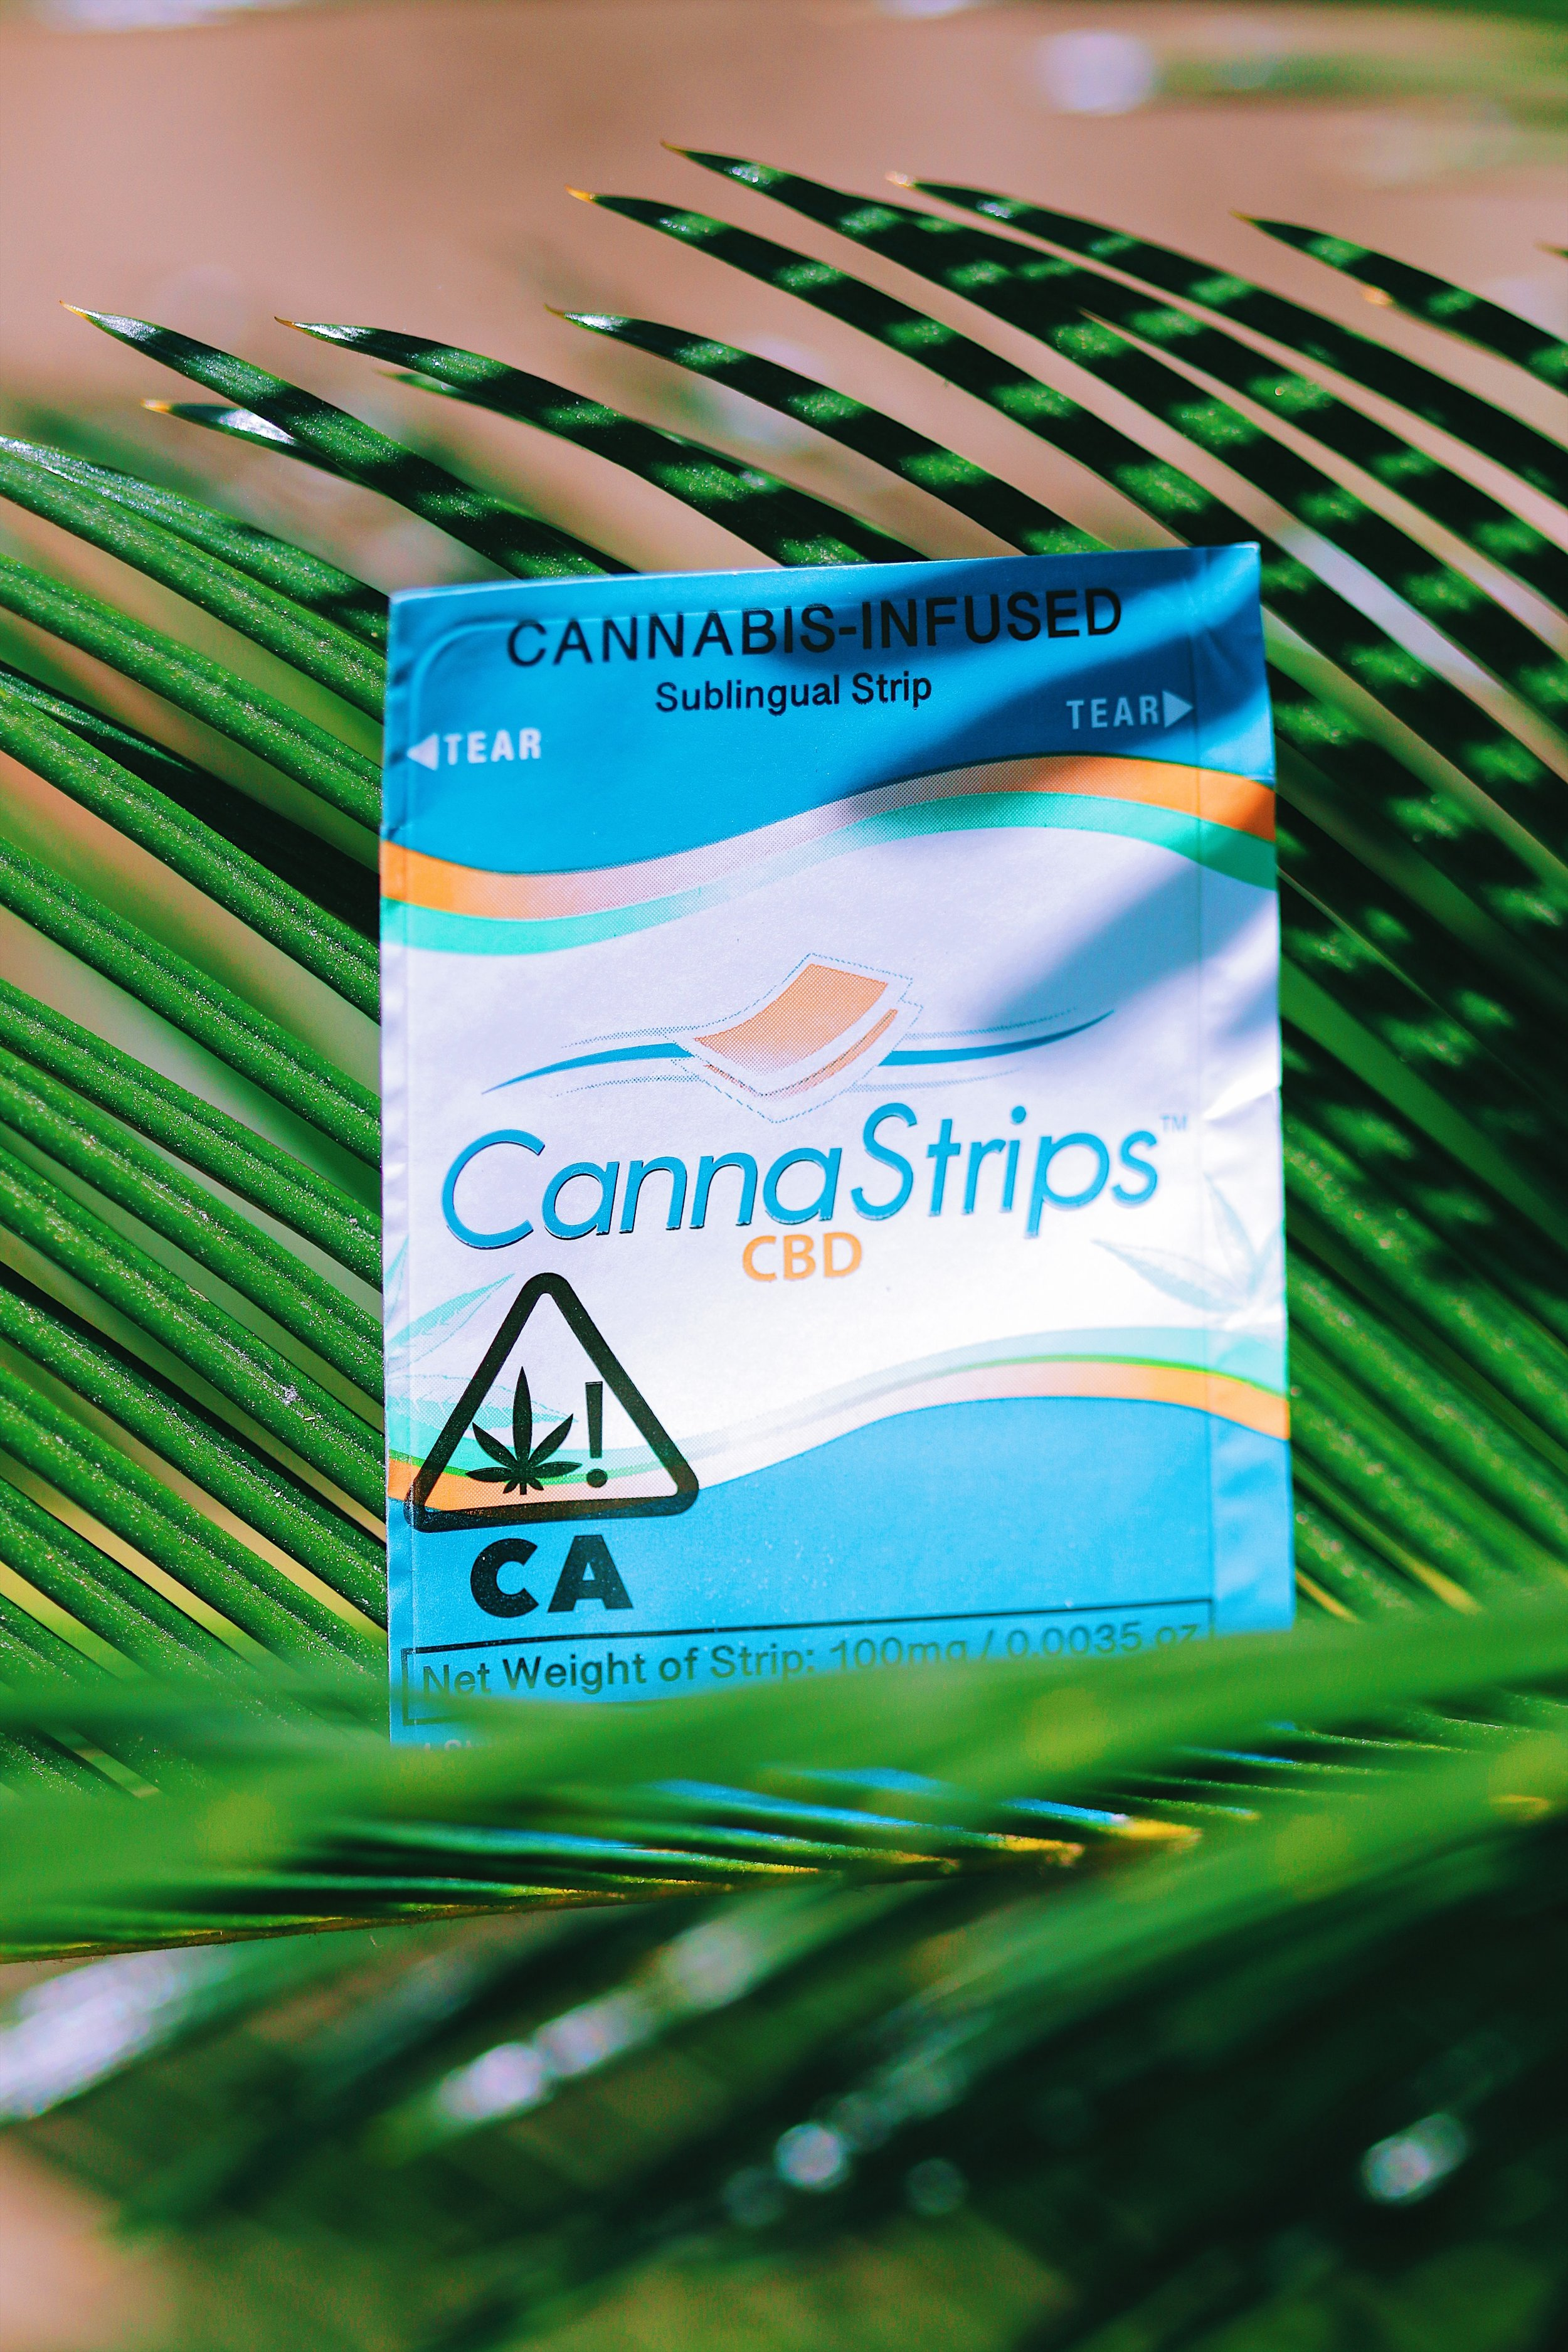 Why CannaStrips™ - CannaStrips™ is a safe cannabis consumption method without the negative effects of smoking. Each strip has a consistent dosage and allows for a discreet and comfortable delivery system.